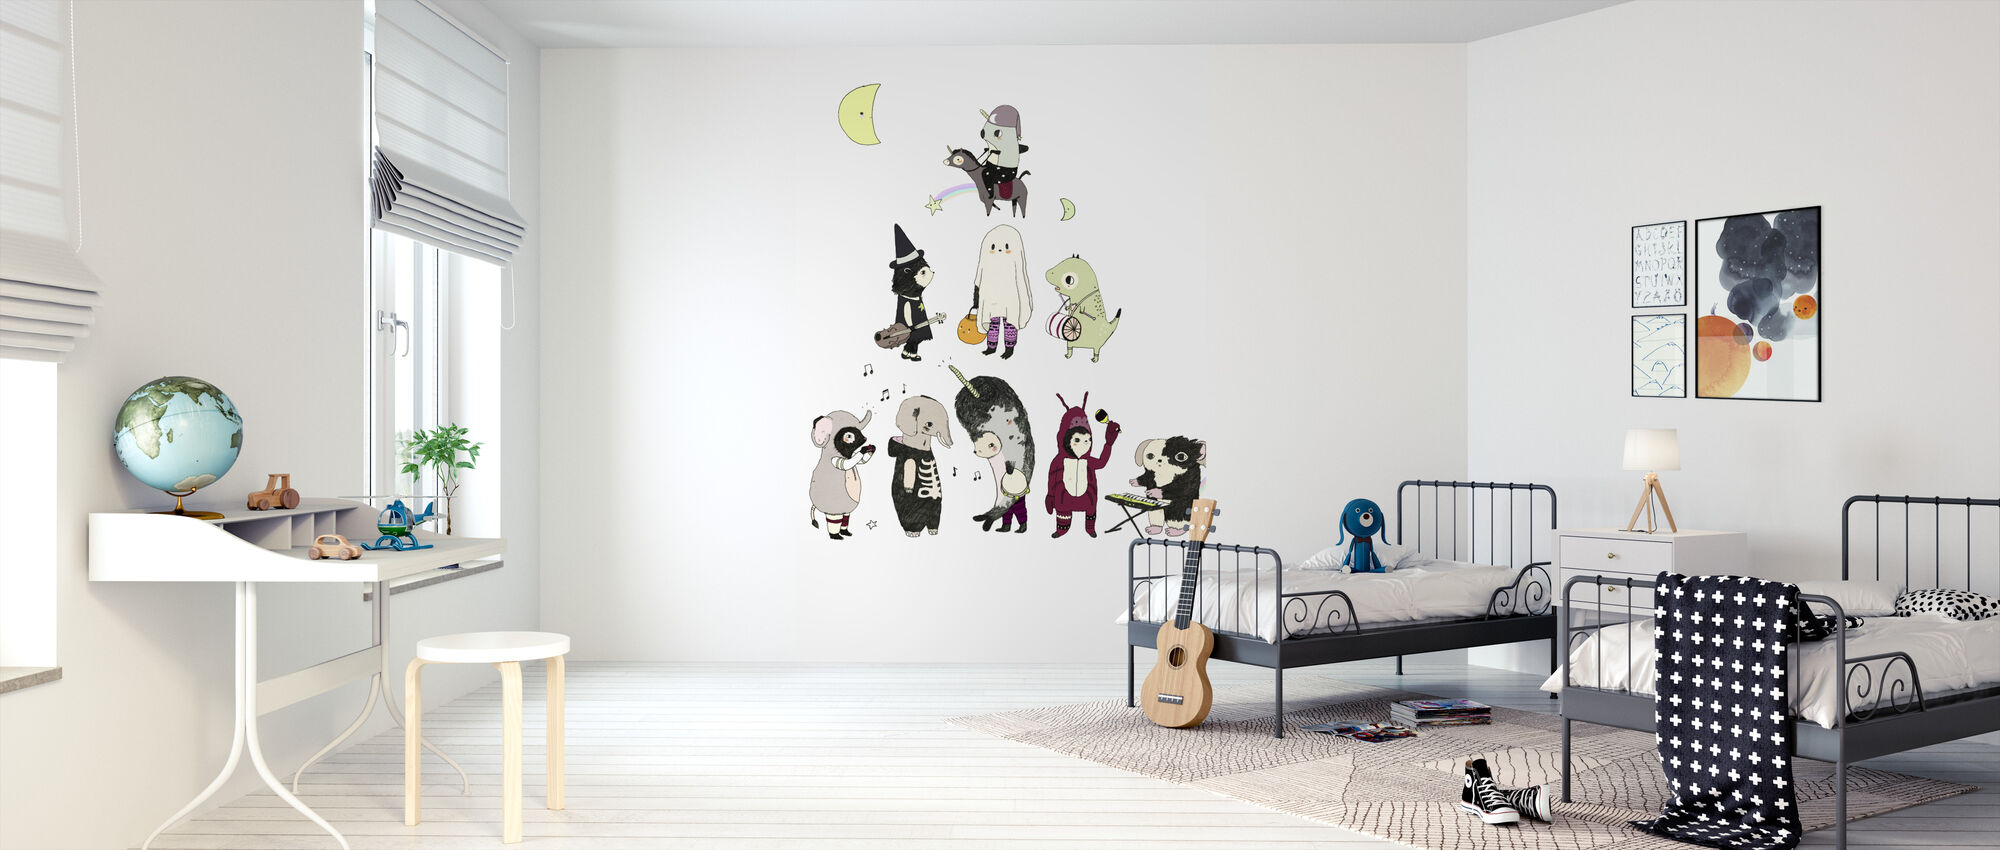 Costume Party - Wallpaper - Kids Room